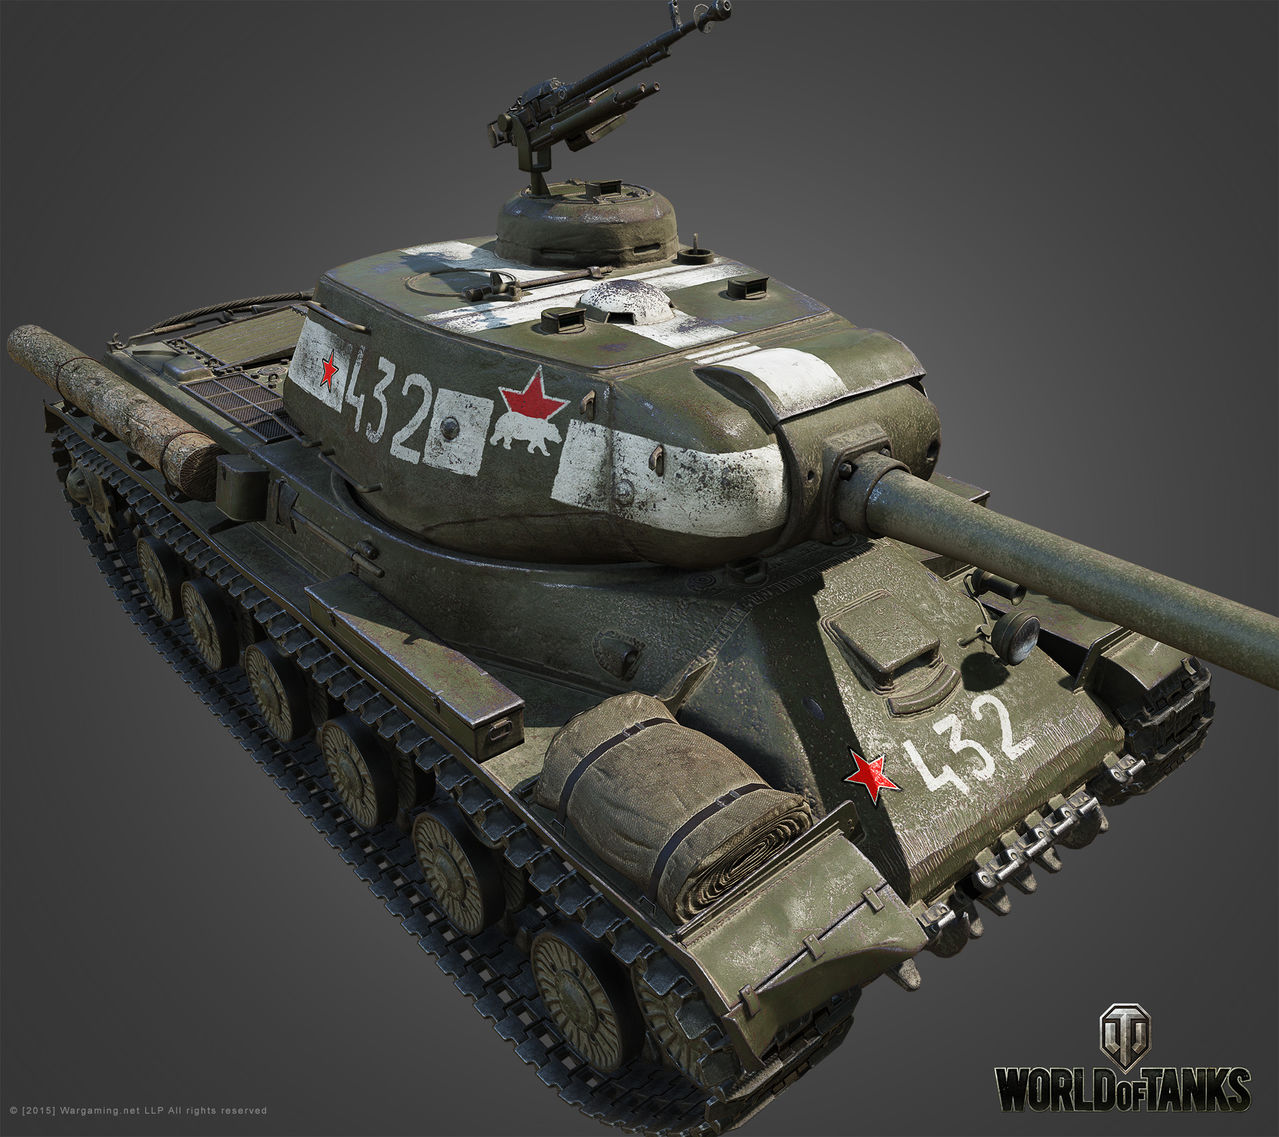 Published in Home , News , WarGaming news and World of Tanks news